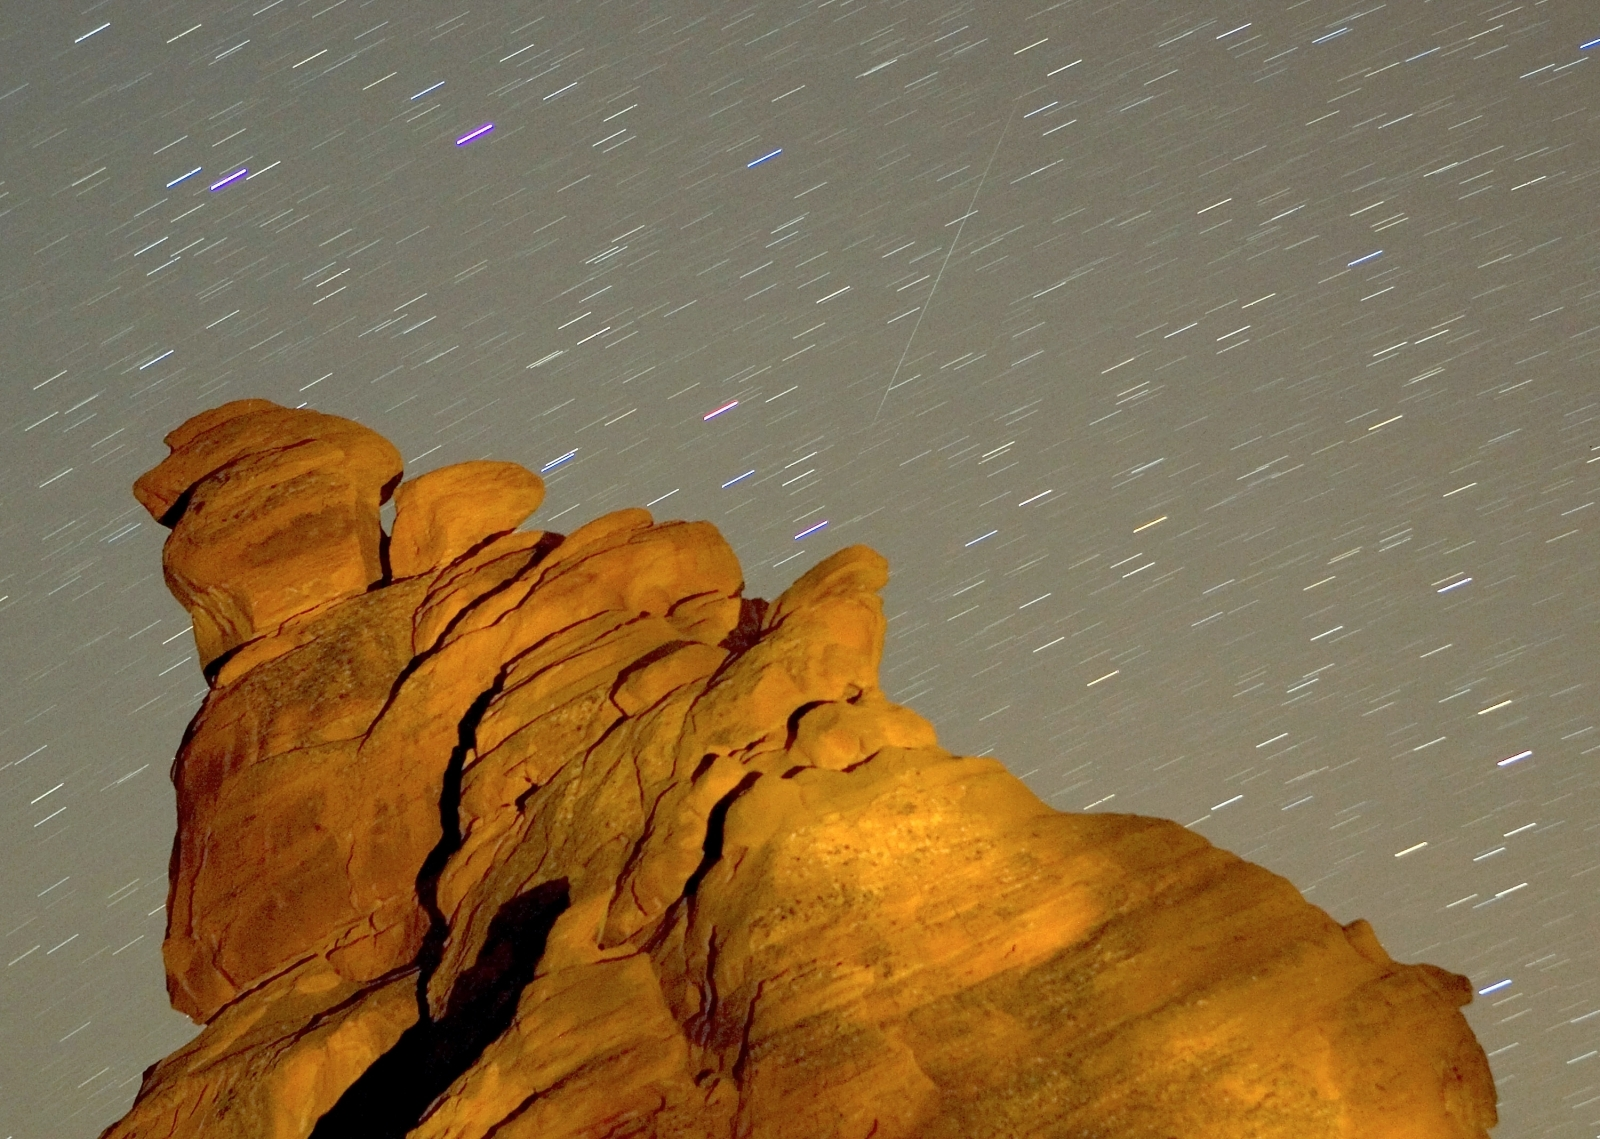 Skywatchers can enjoy a dazzling meteor shower this week